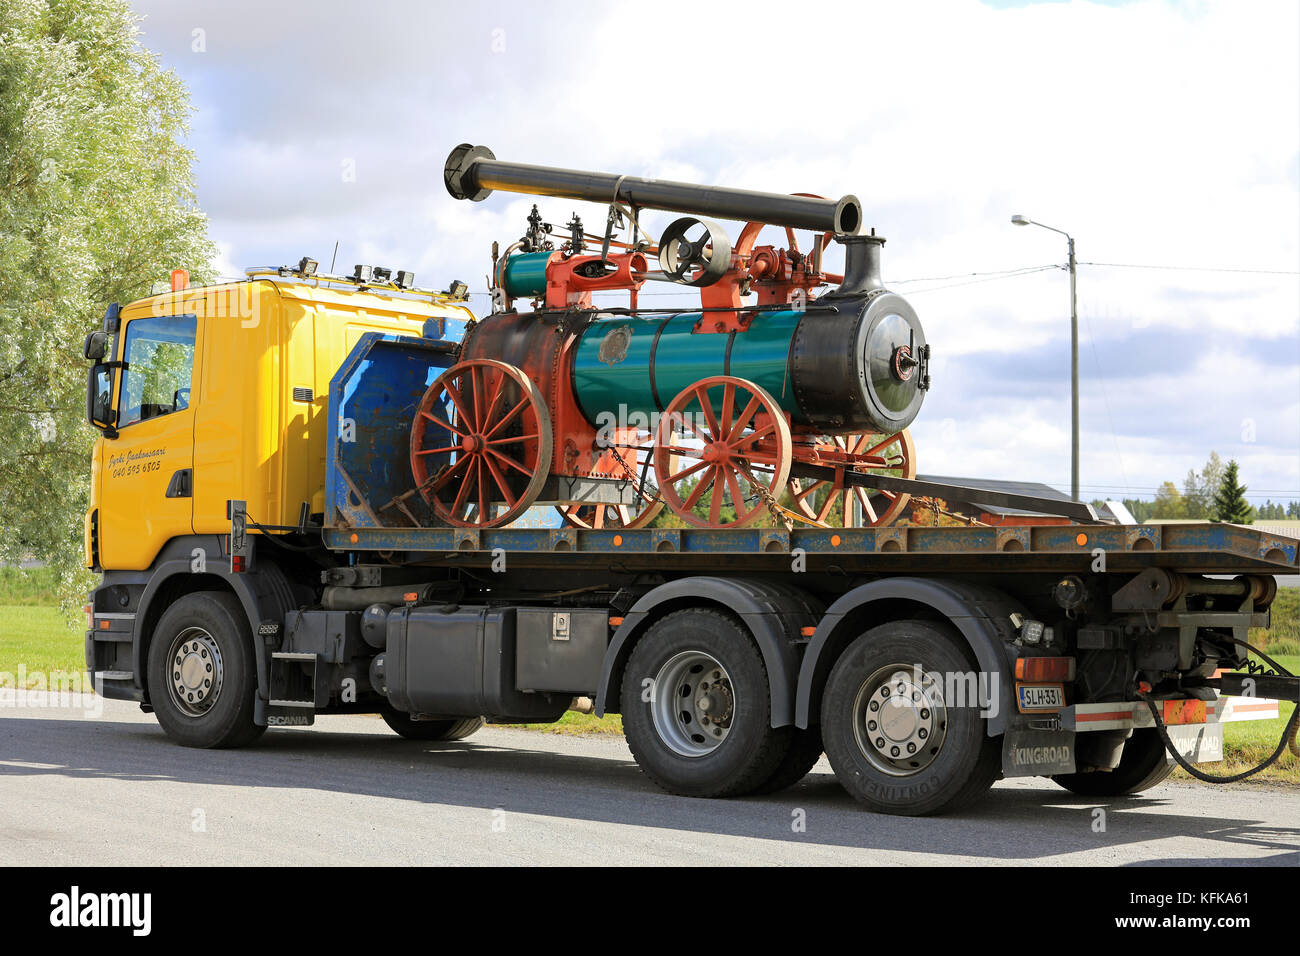 KOSKI TL, FINLAND - SEPTEMBER 1, 2017: Steam Traction Engine by Ruston, Proctor & Co, likely year 1899 transported - Stock Image